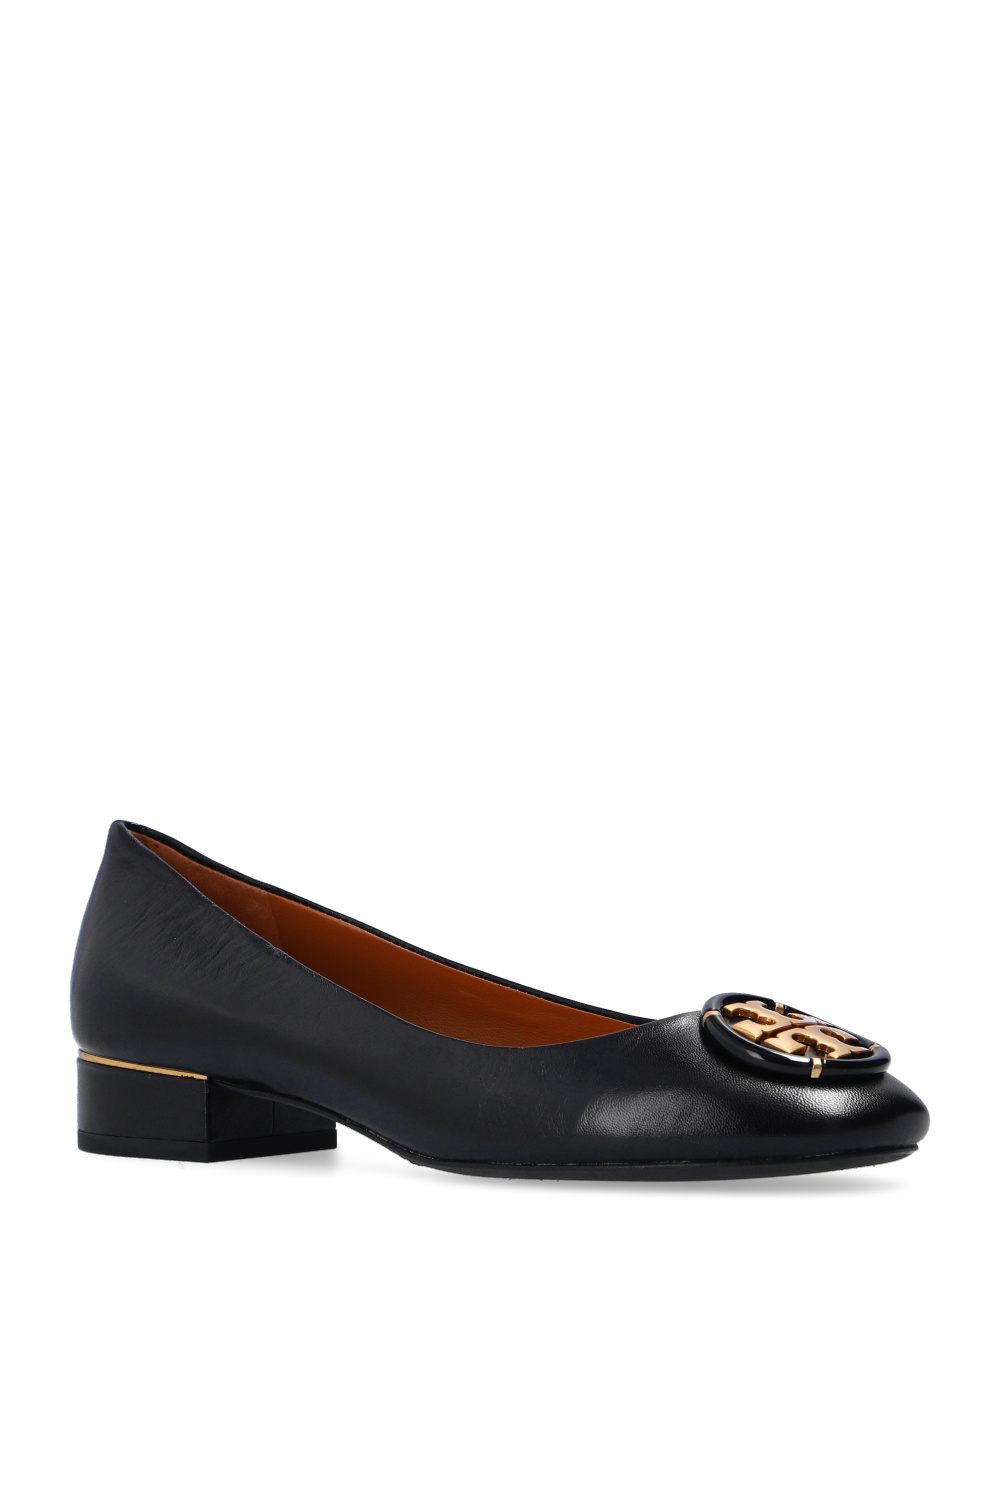 Tory Burch Pumps with logo